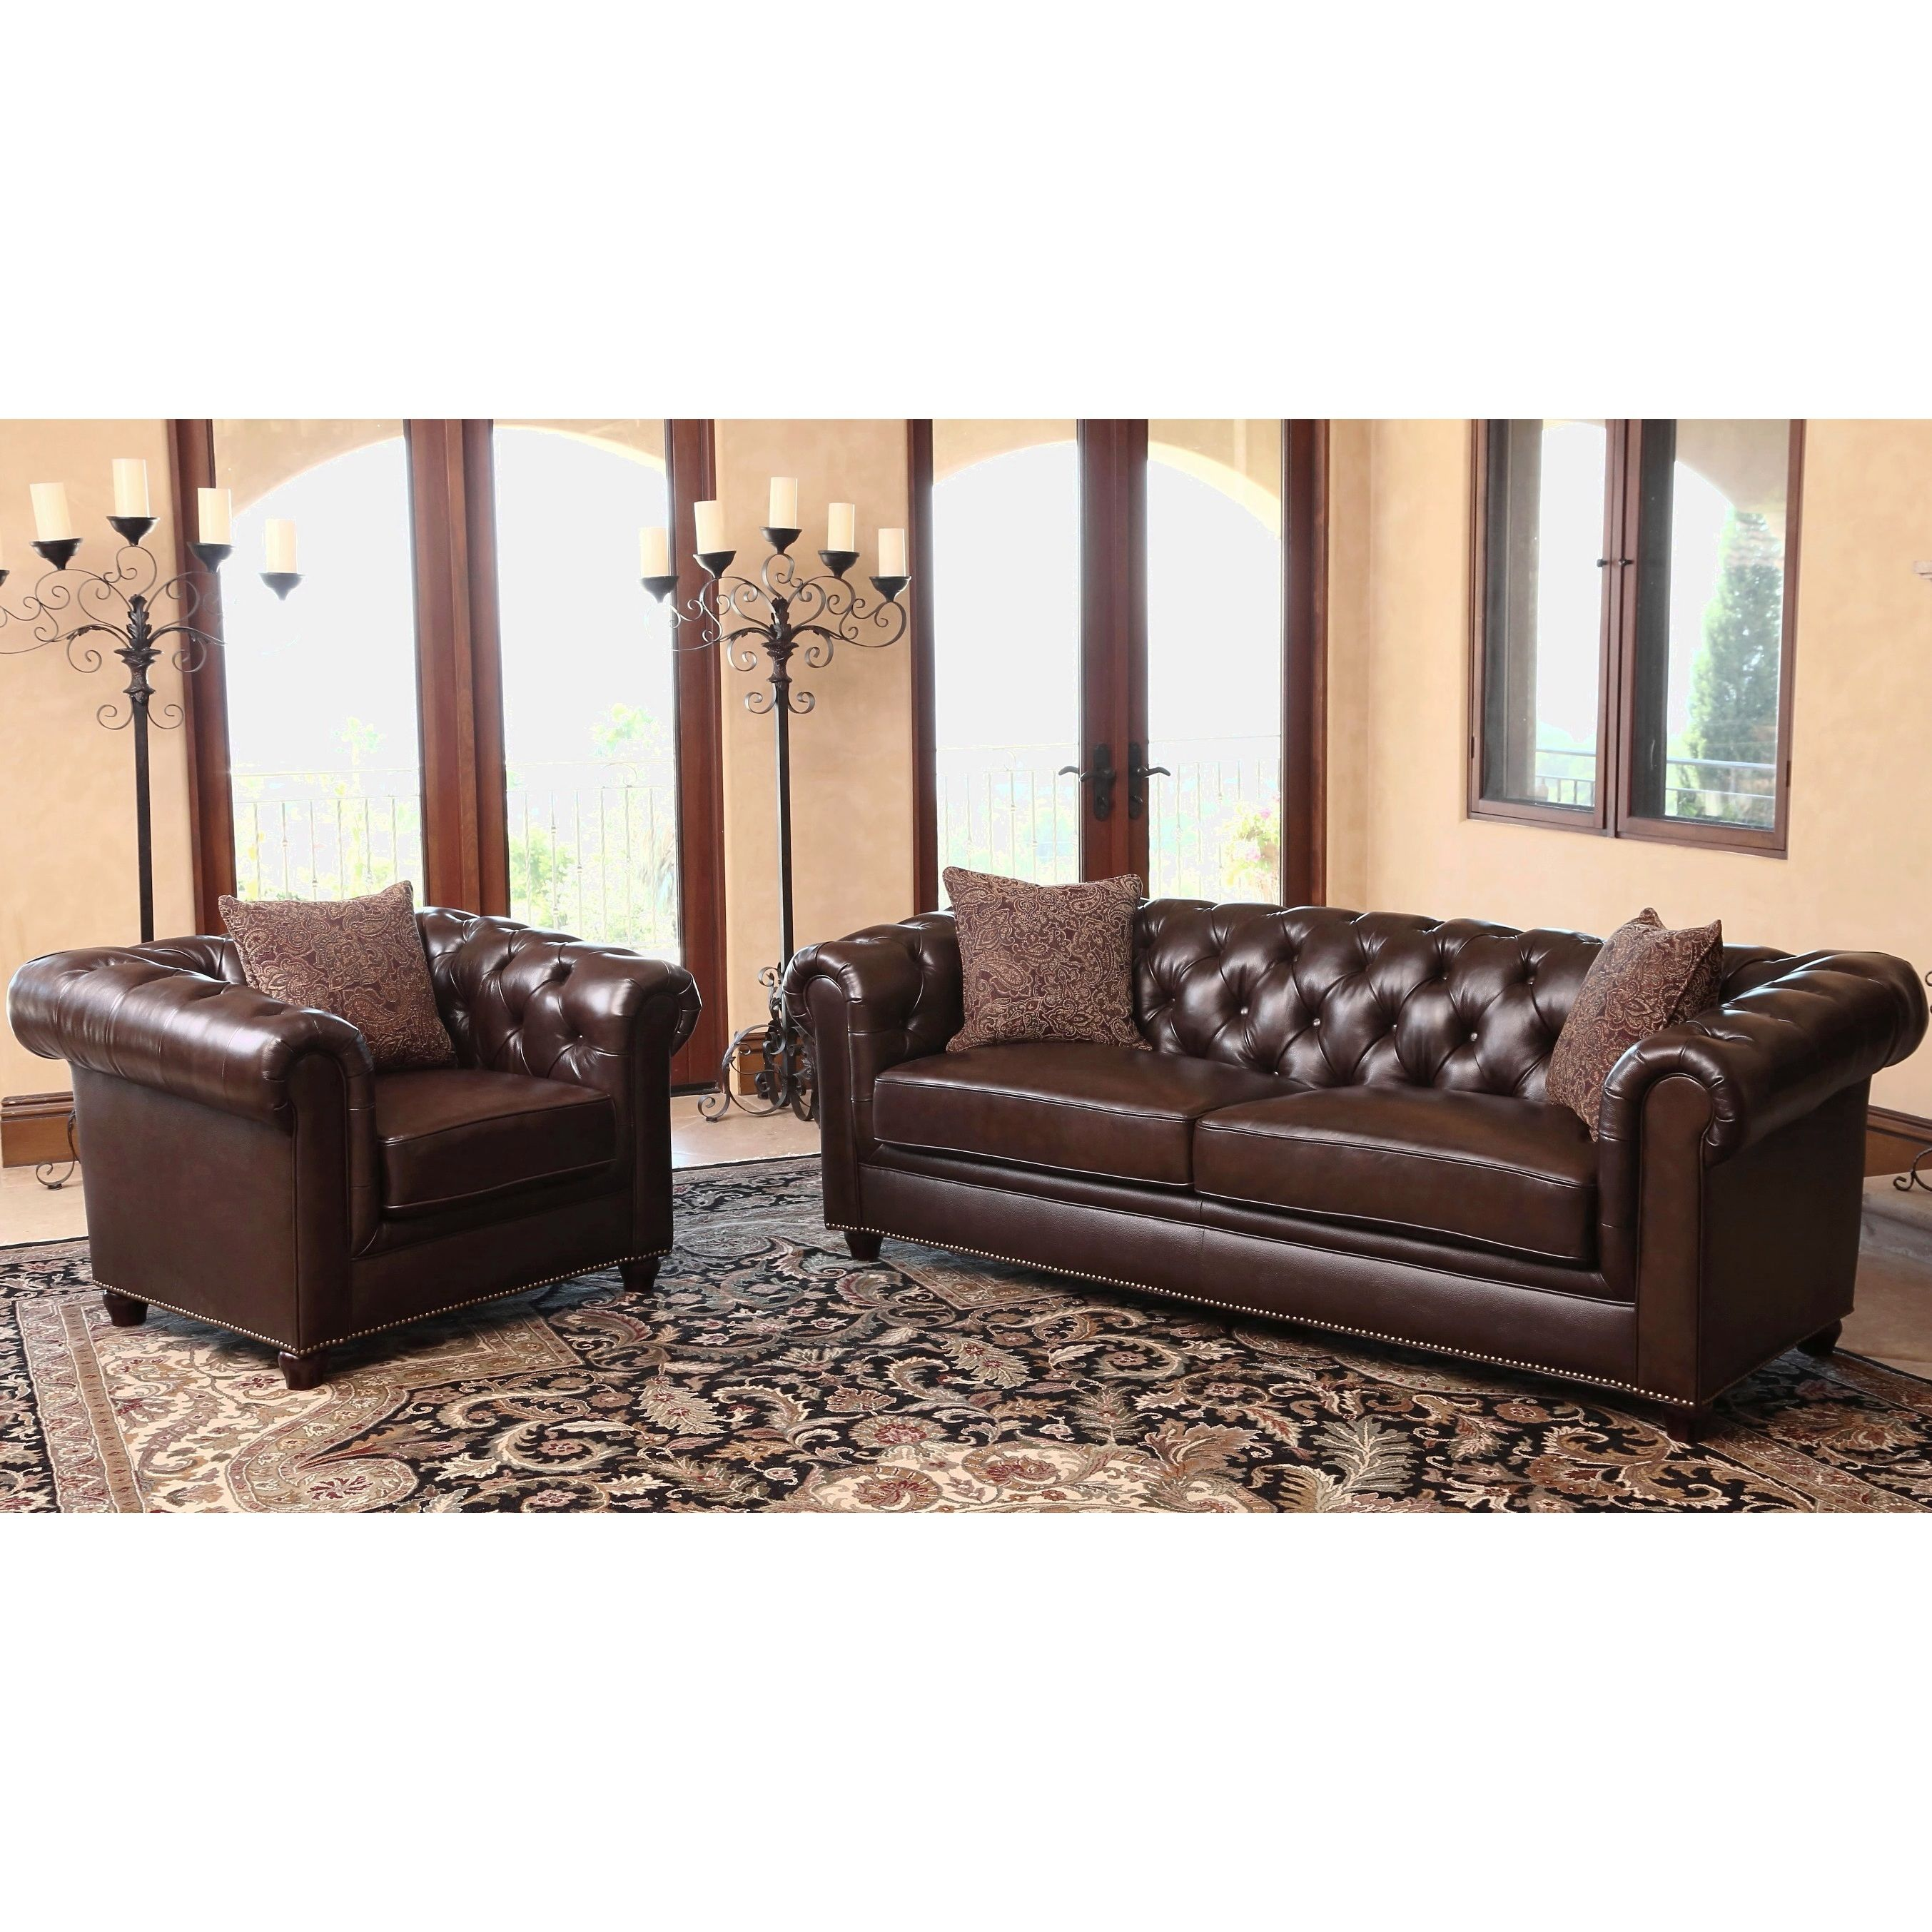 crafted of durable high grade italian leather that is both soft and supple this sofa and armchair set provides both comfort and class with its